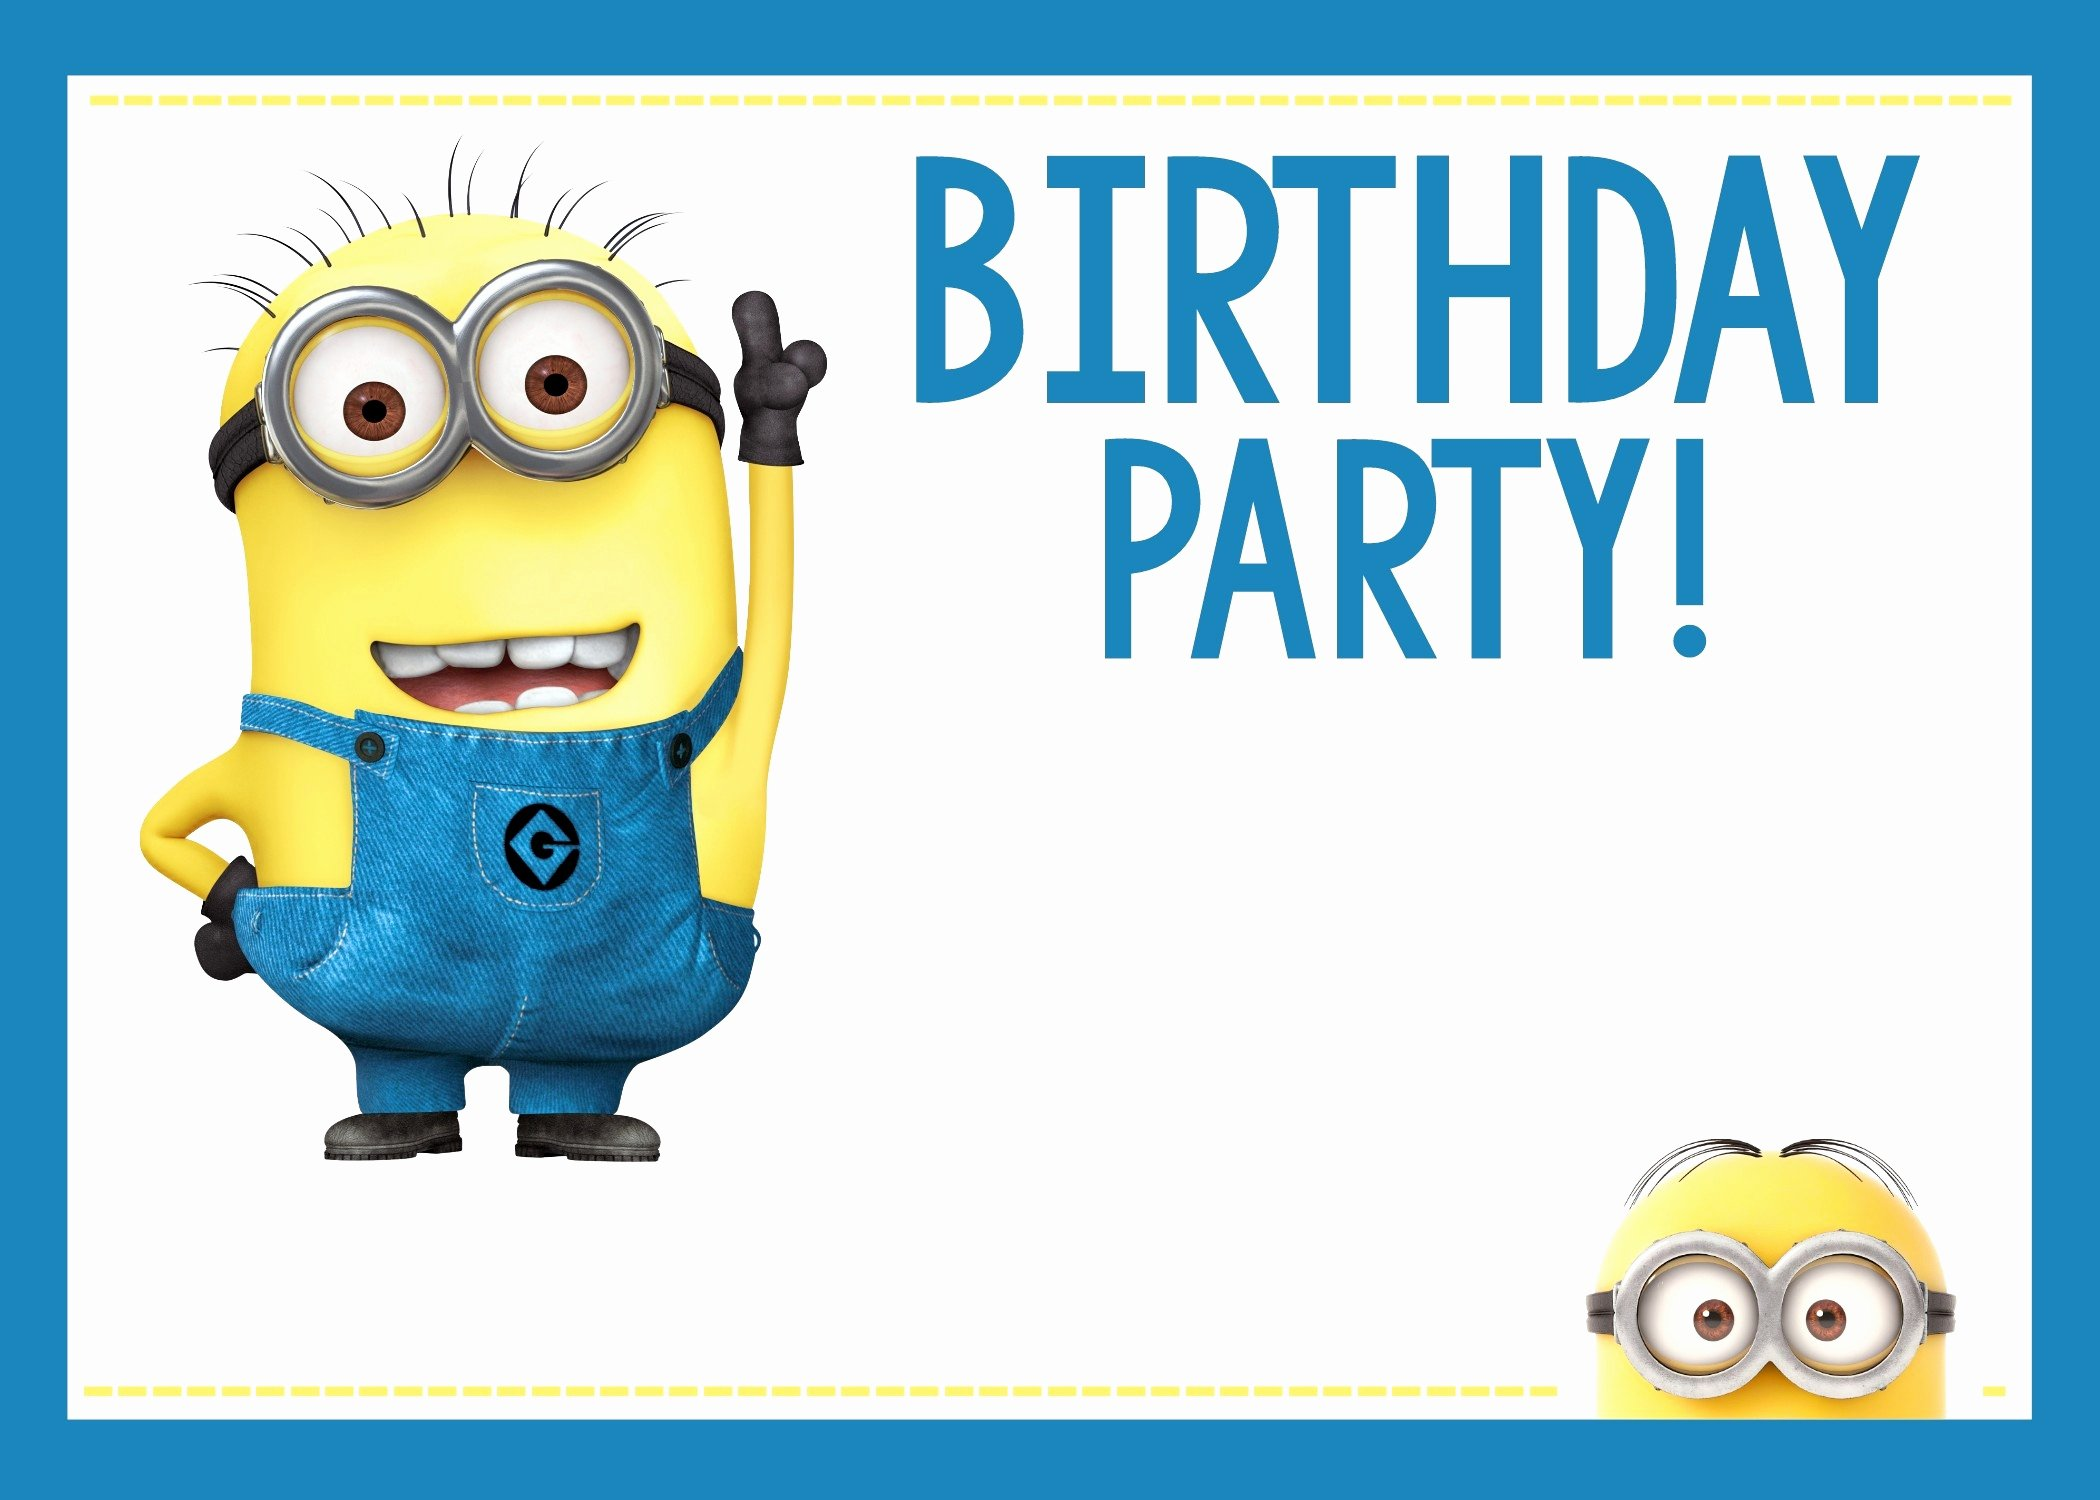 Minions Birthday Card Template Fresh Minion Birthday Card Template Unique Minion Birthday Card